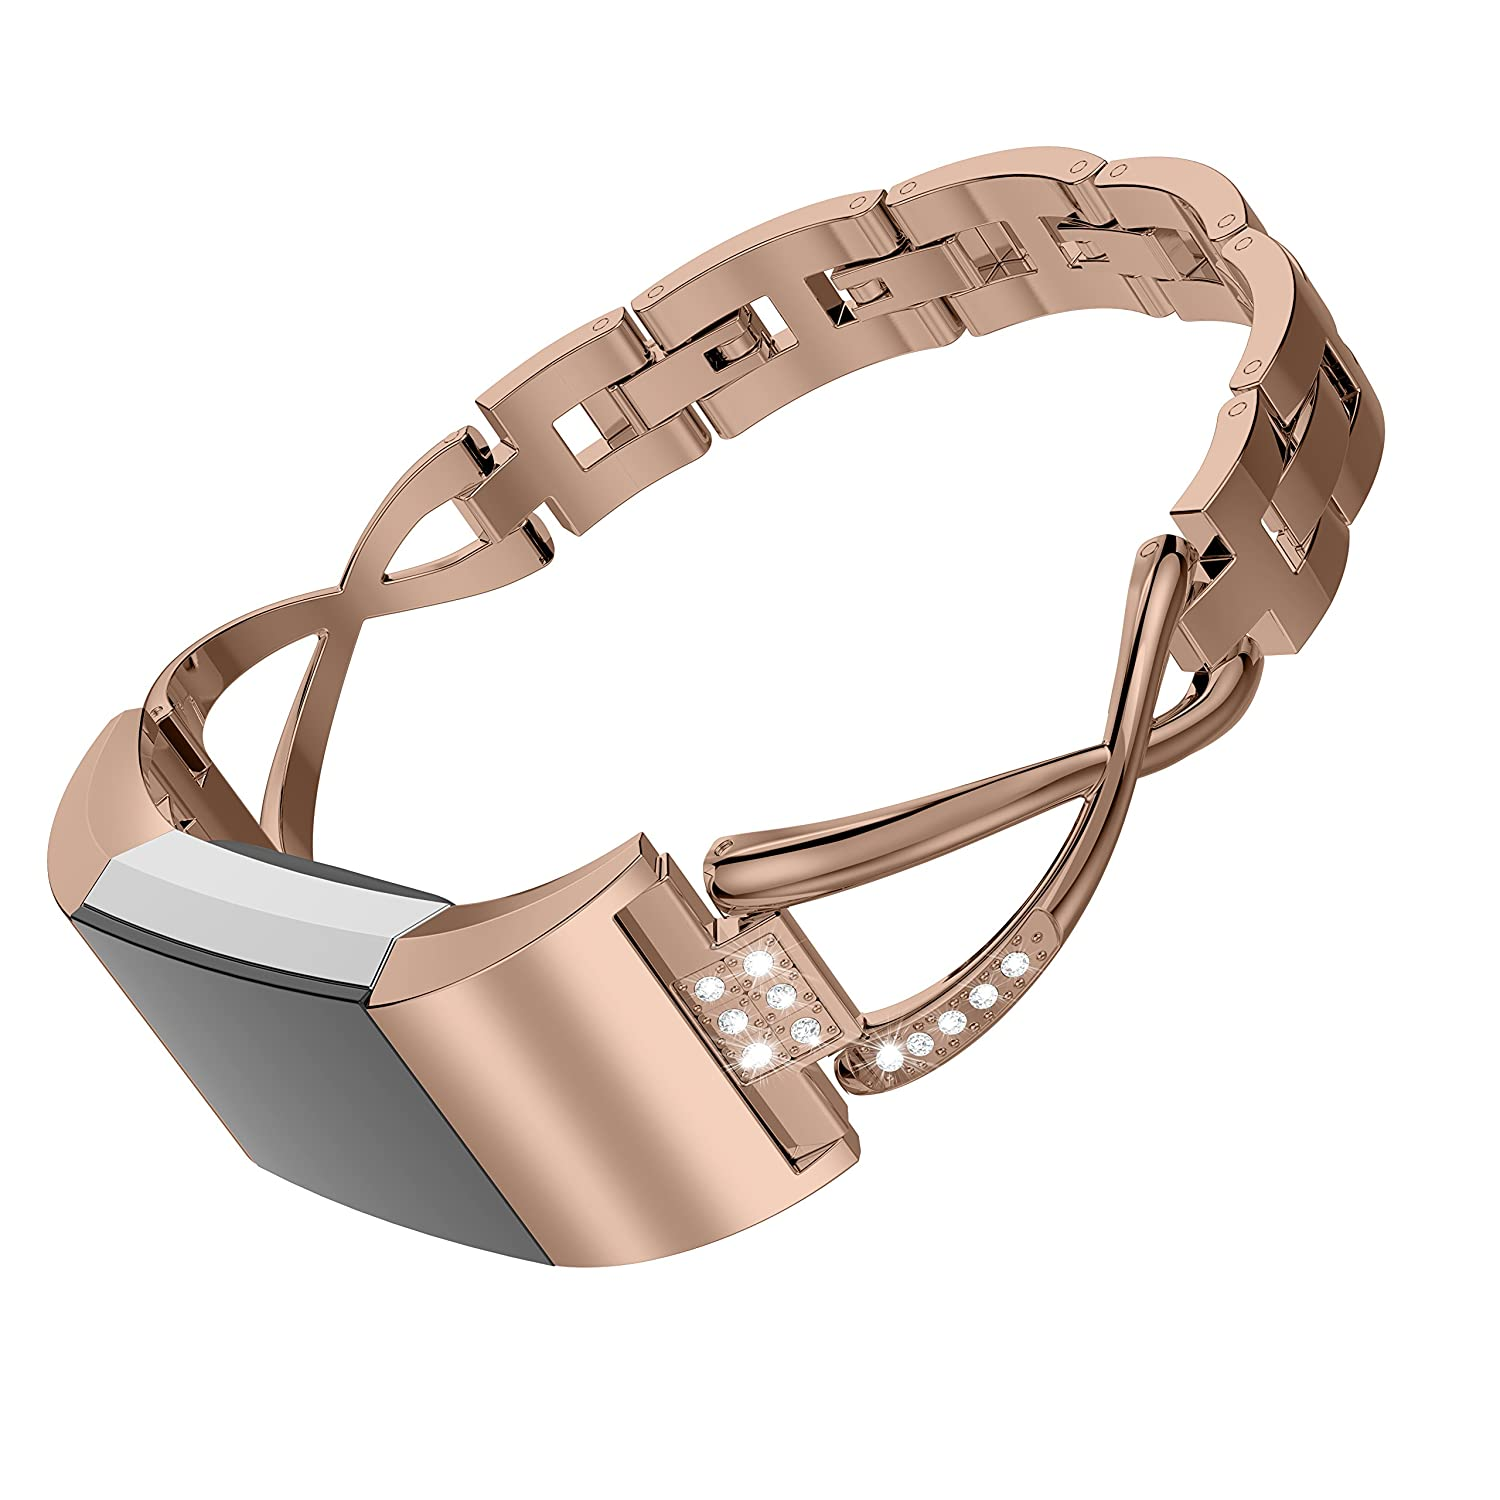 Wearlizer Replacement for Fitbit Charge 2 Bands for Women Metal Bangle//Bracelet//Assesories//Straps//Wrist Band for Fitbit Charge hr 2 Women Small Large